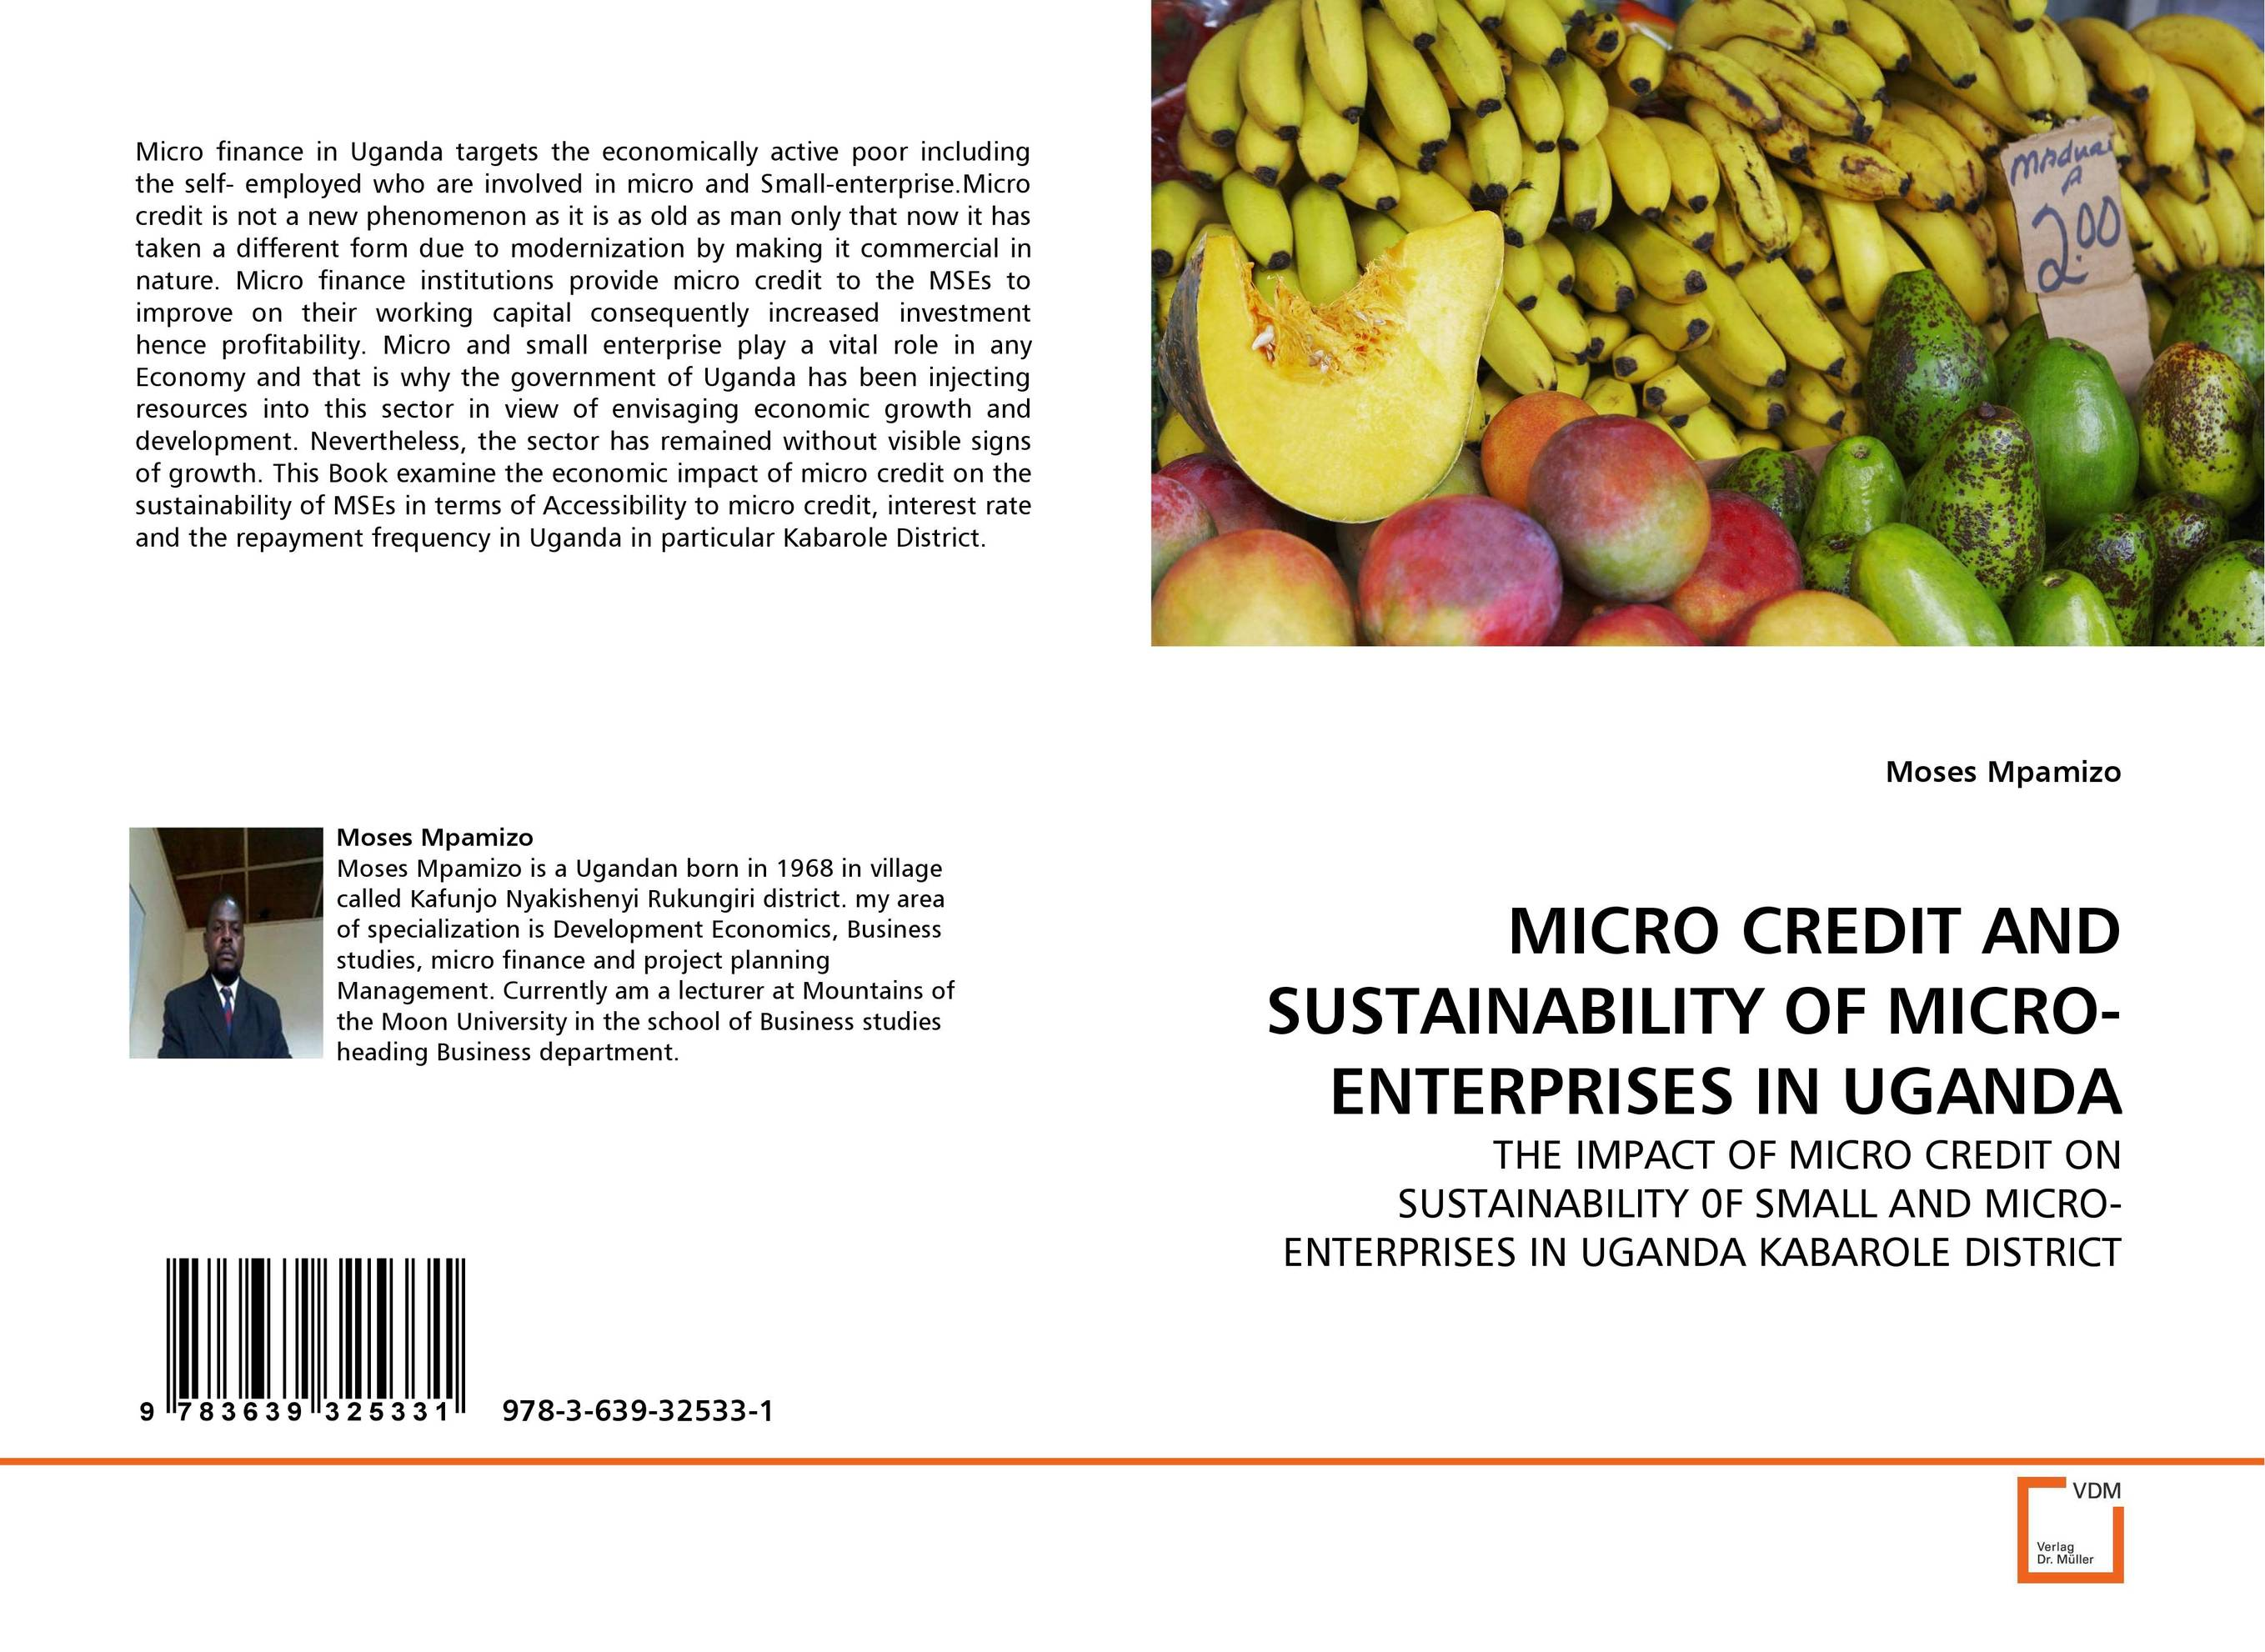 MICRO CREDIT AND SUSTAINABILITY OF MICRO-ENTERPRISES IN UGANDA micro finance in india